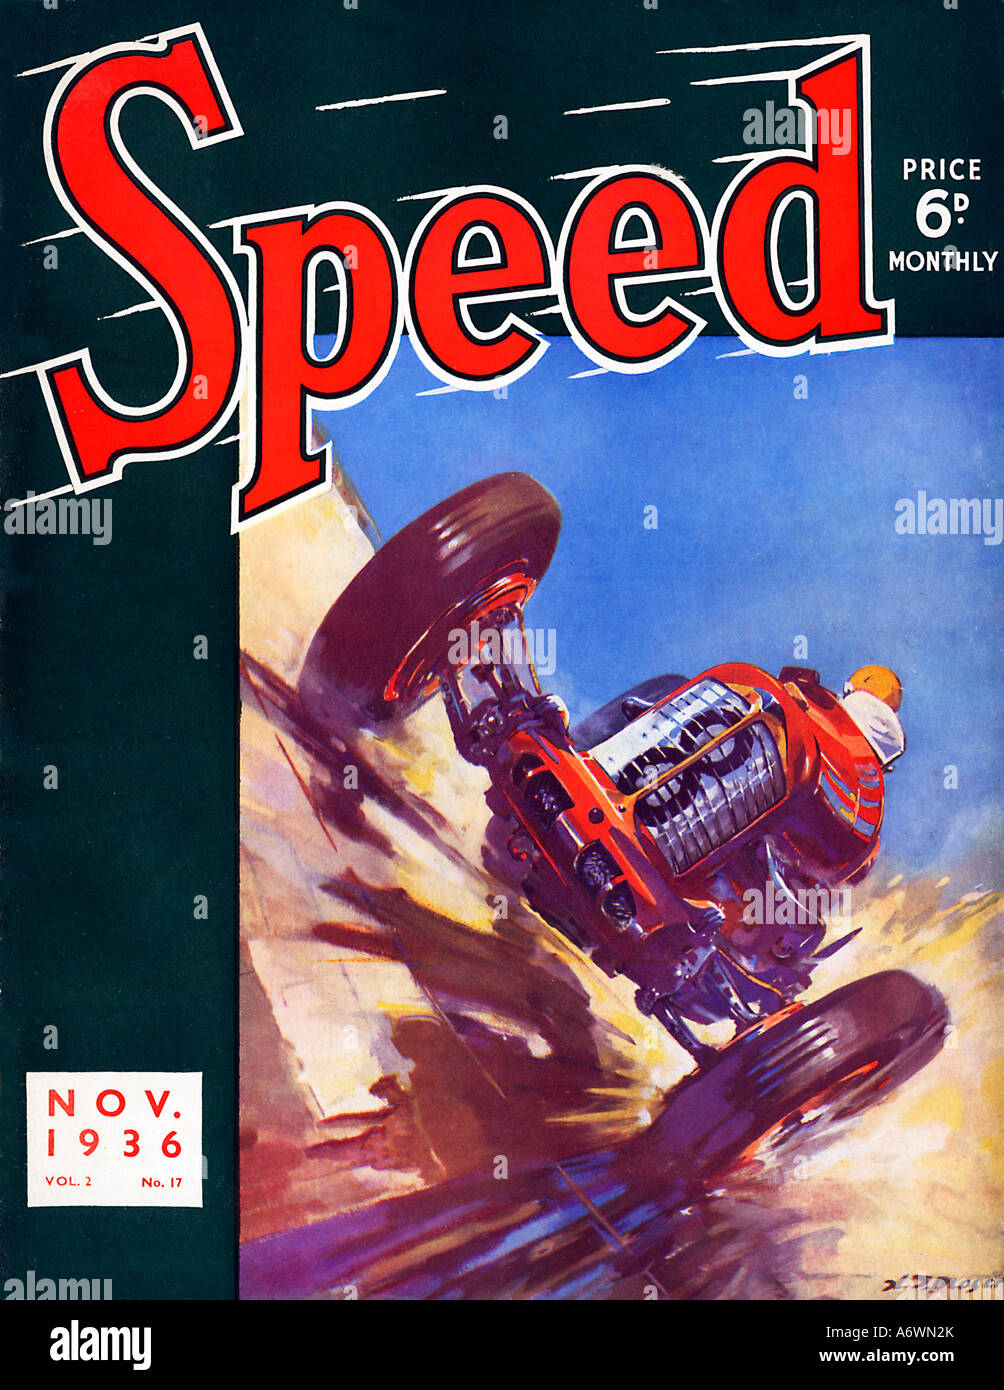 Speed Nov 1936 cover of the magazine for motor sport enthusiasts with a racing car taking the banking - Stock Image